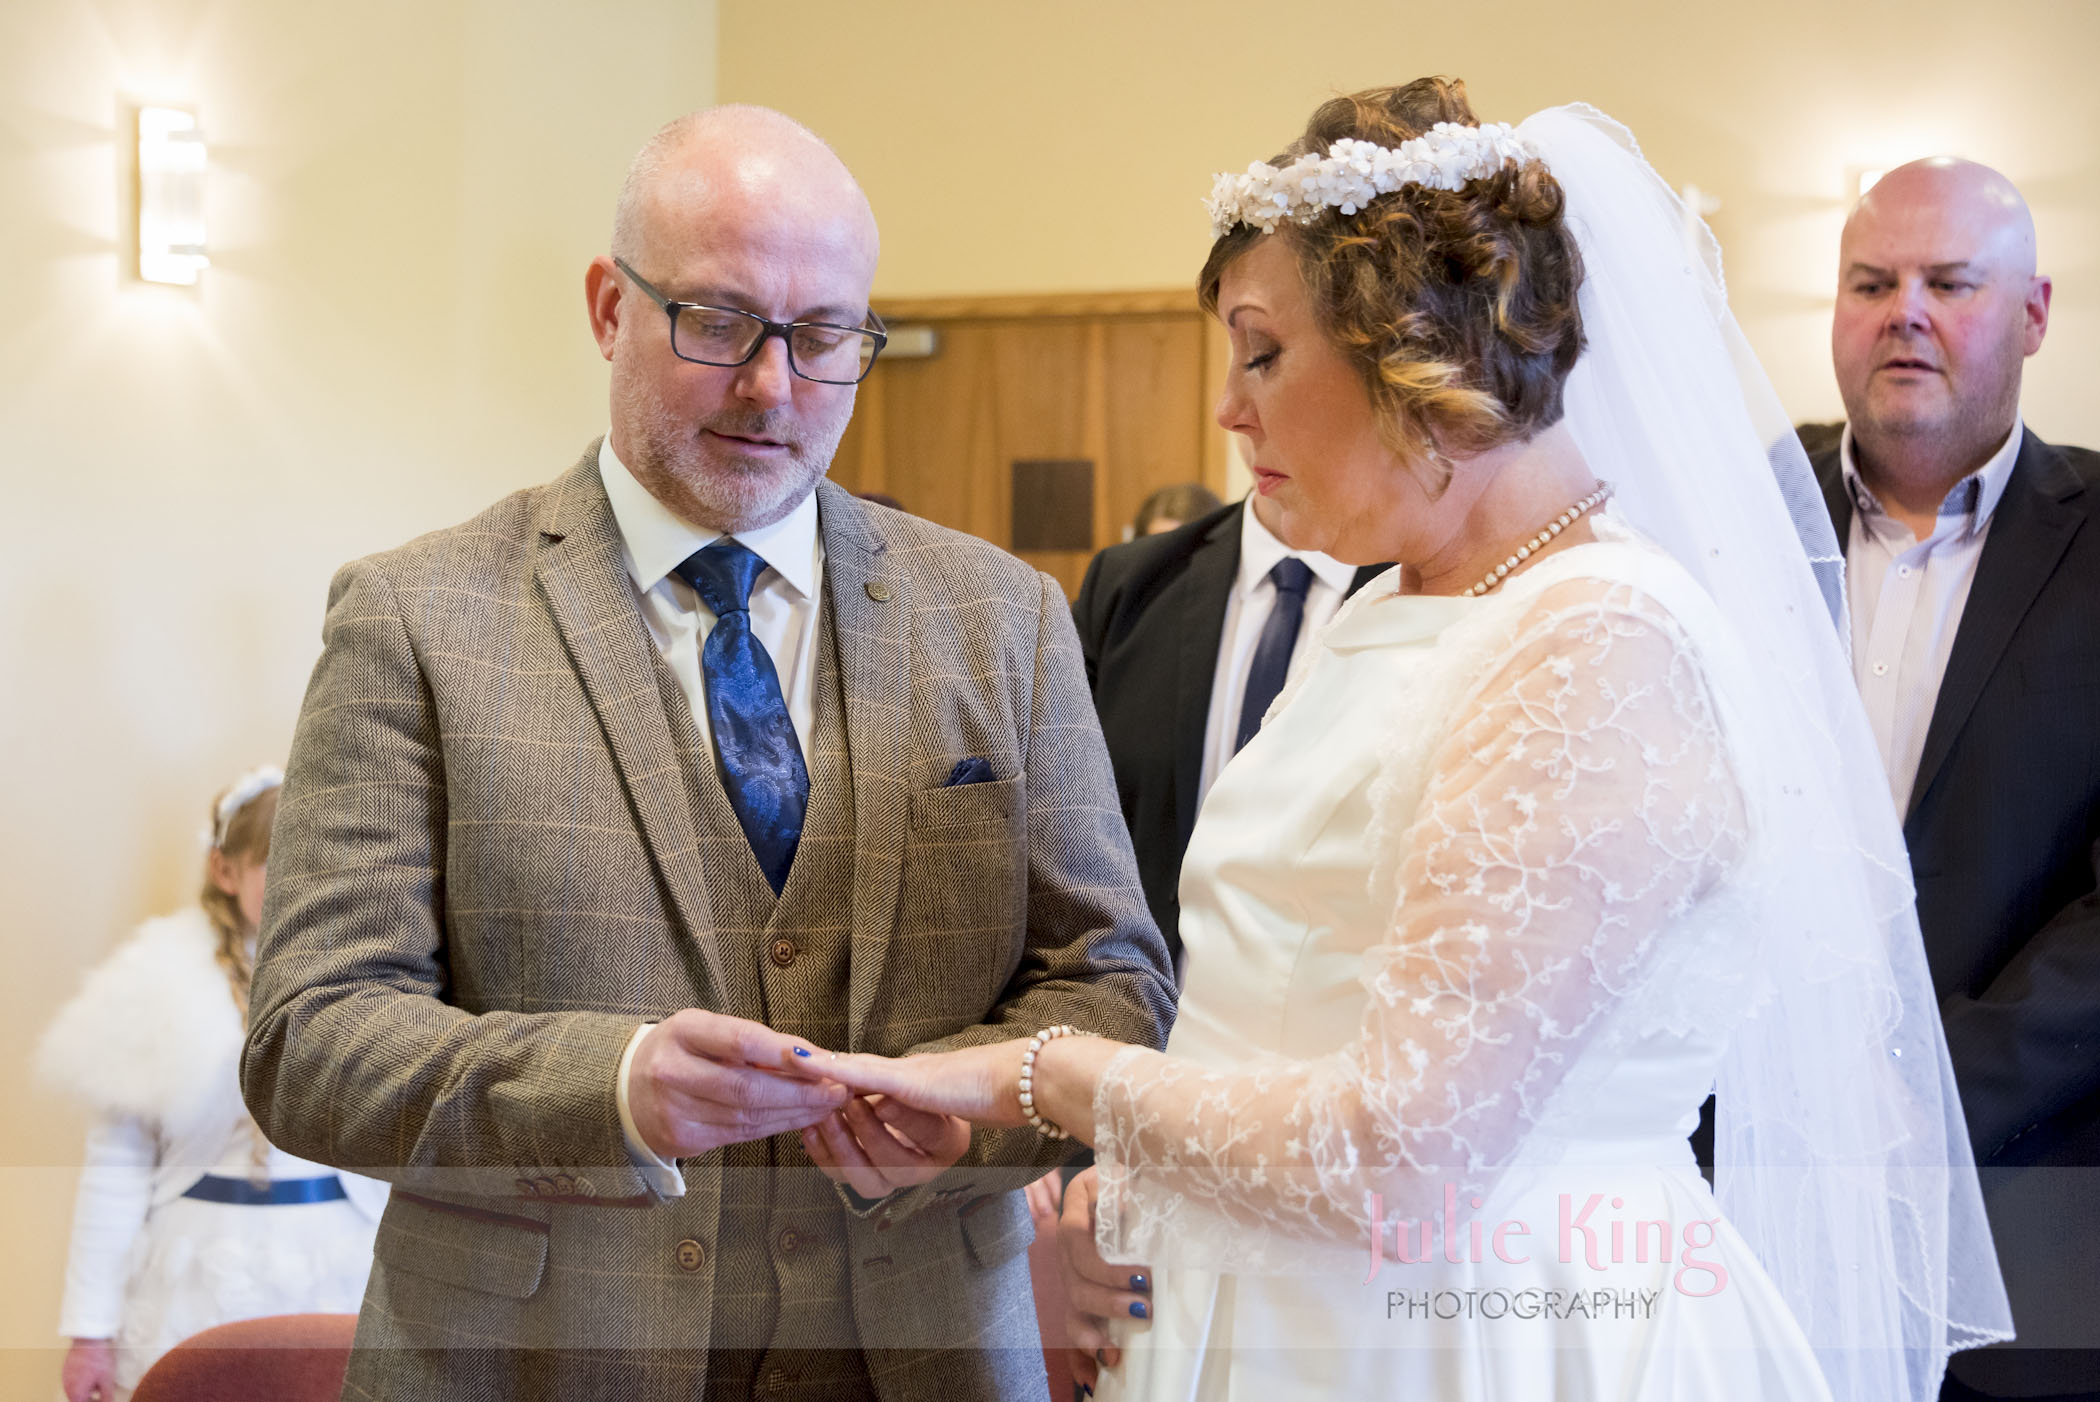 Registry office weddings photography